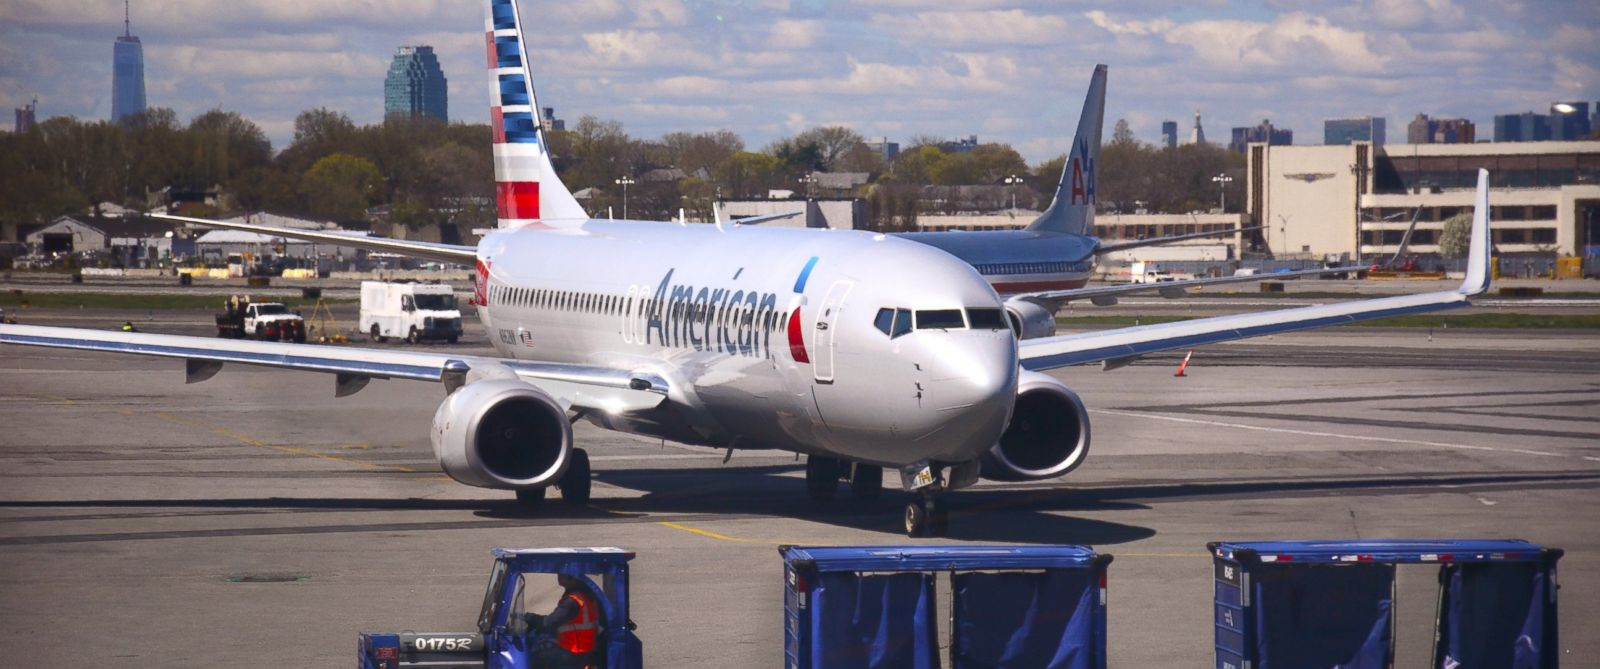 PHOTO: An American Airlines passenger aircraft arrives at the gate at LaGuardia Airport in New York, April 28, 2015.